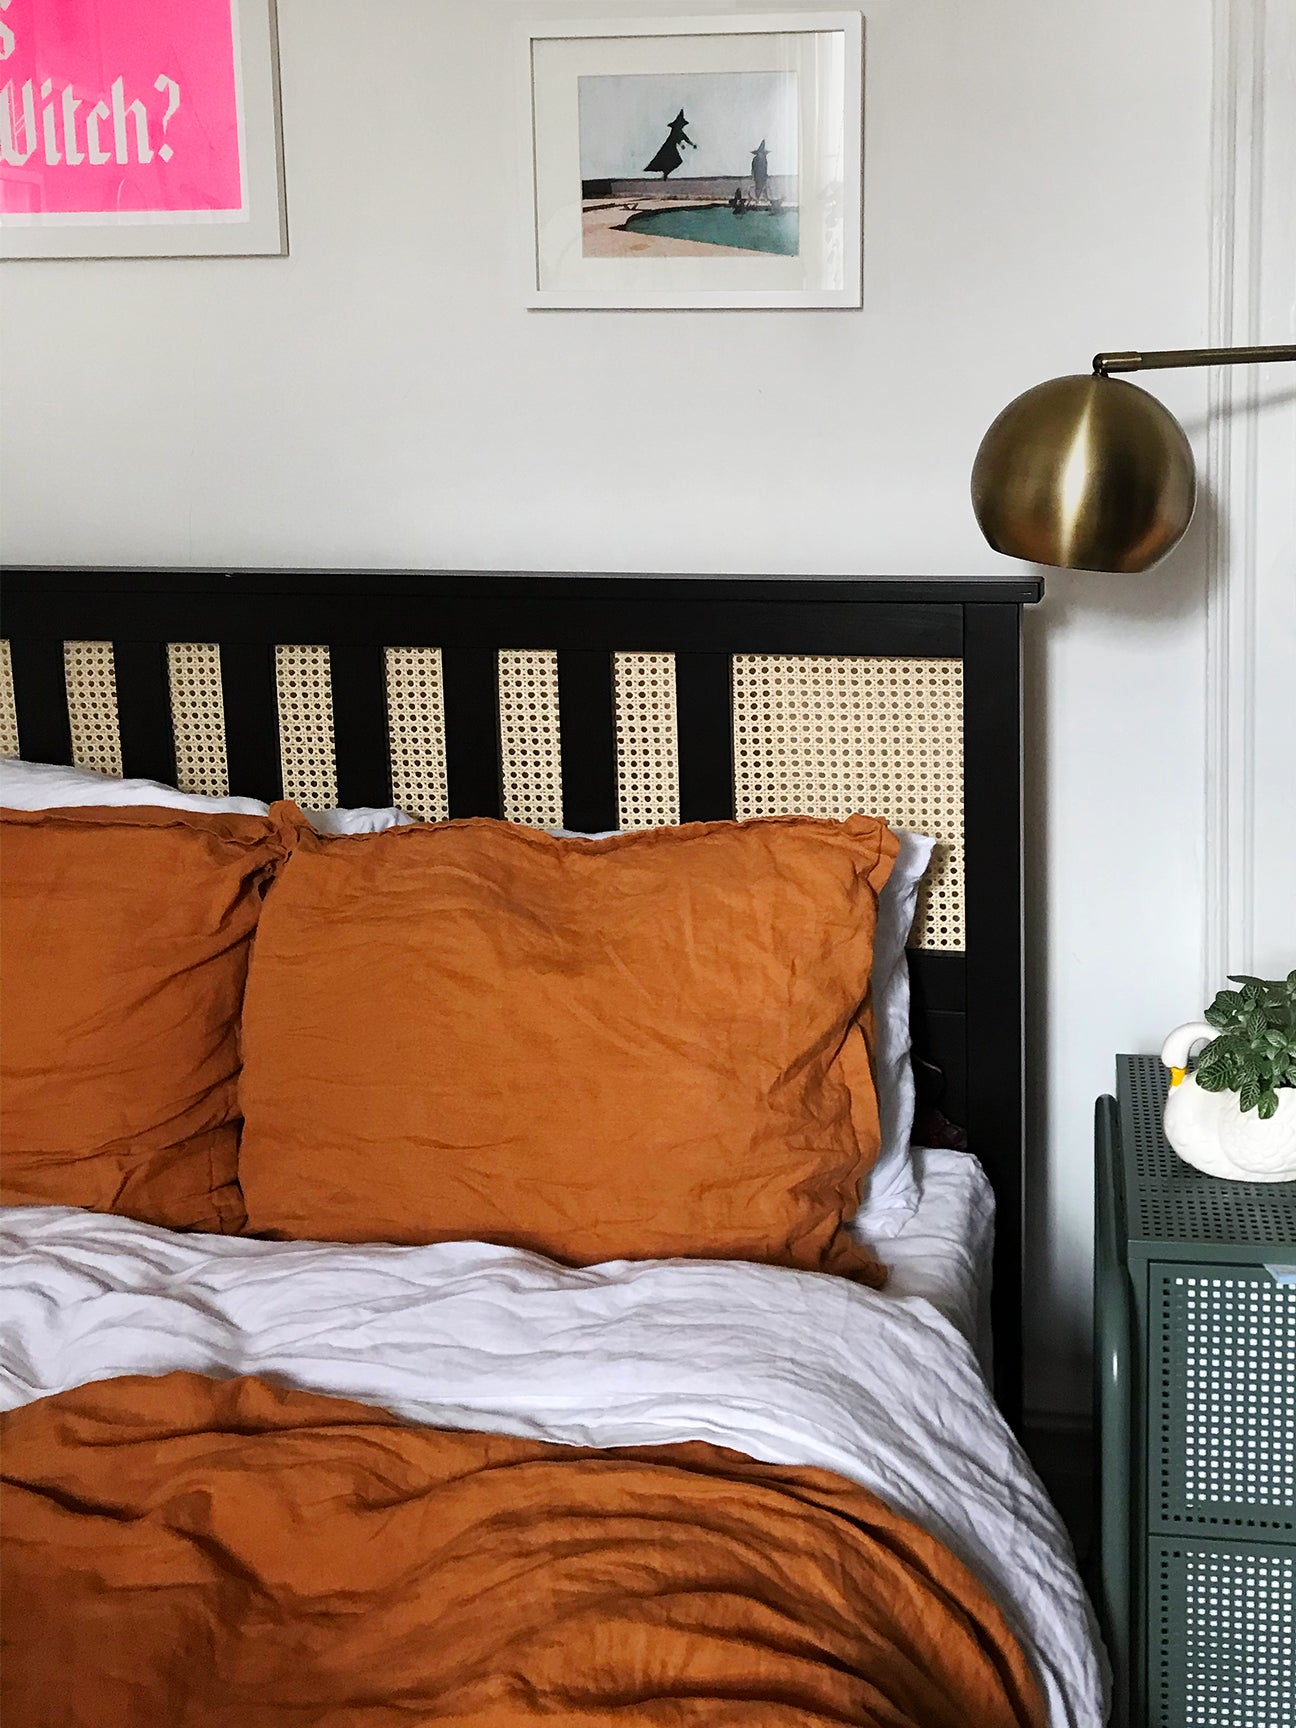 Bed with caning headboard